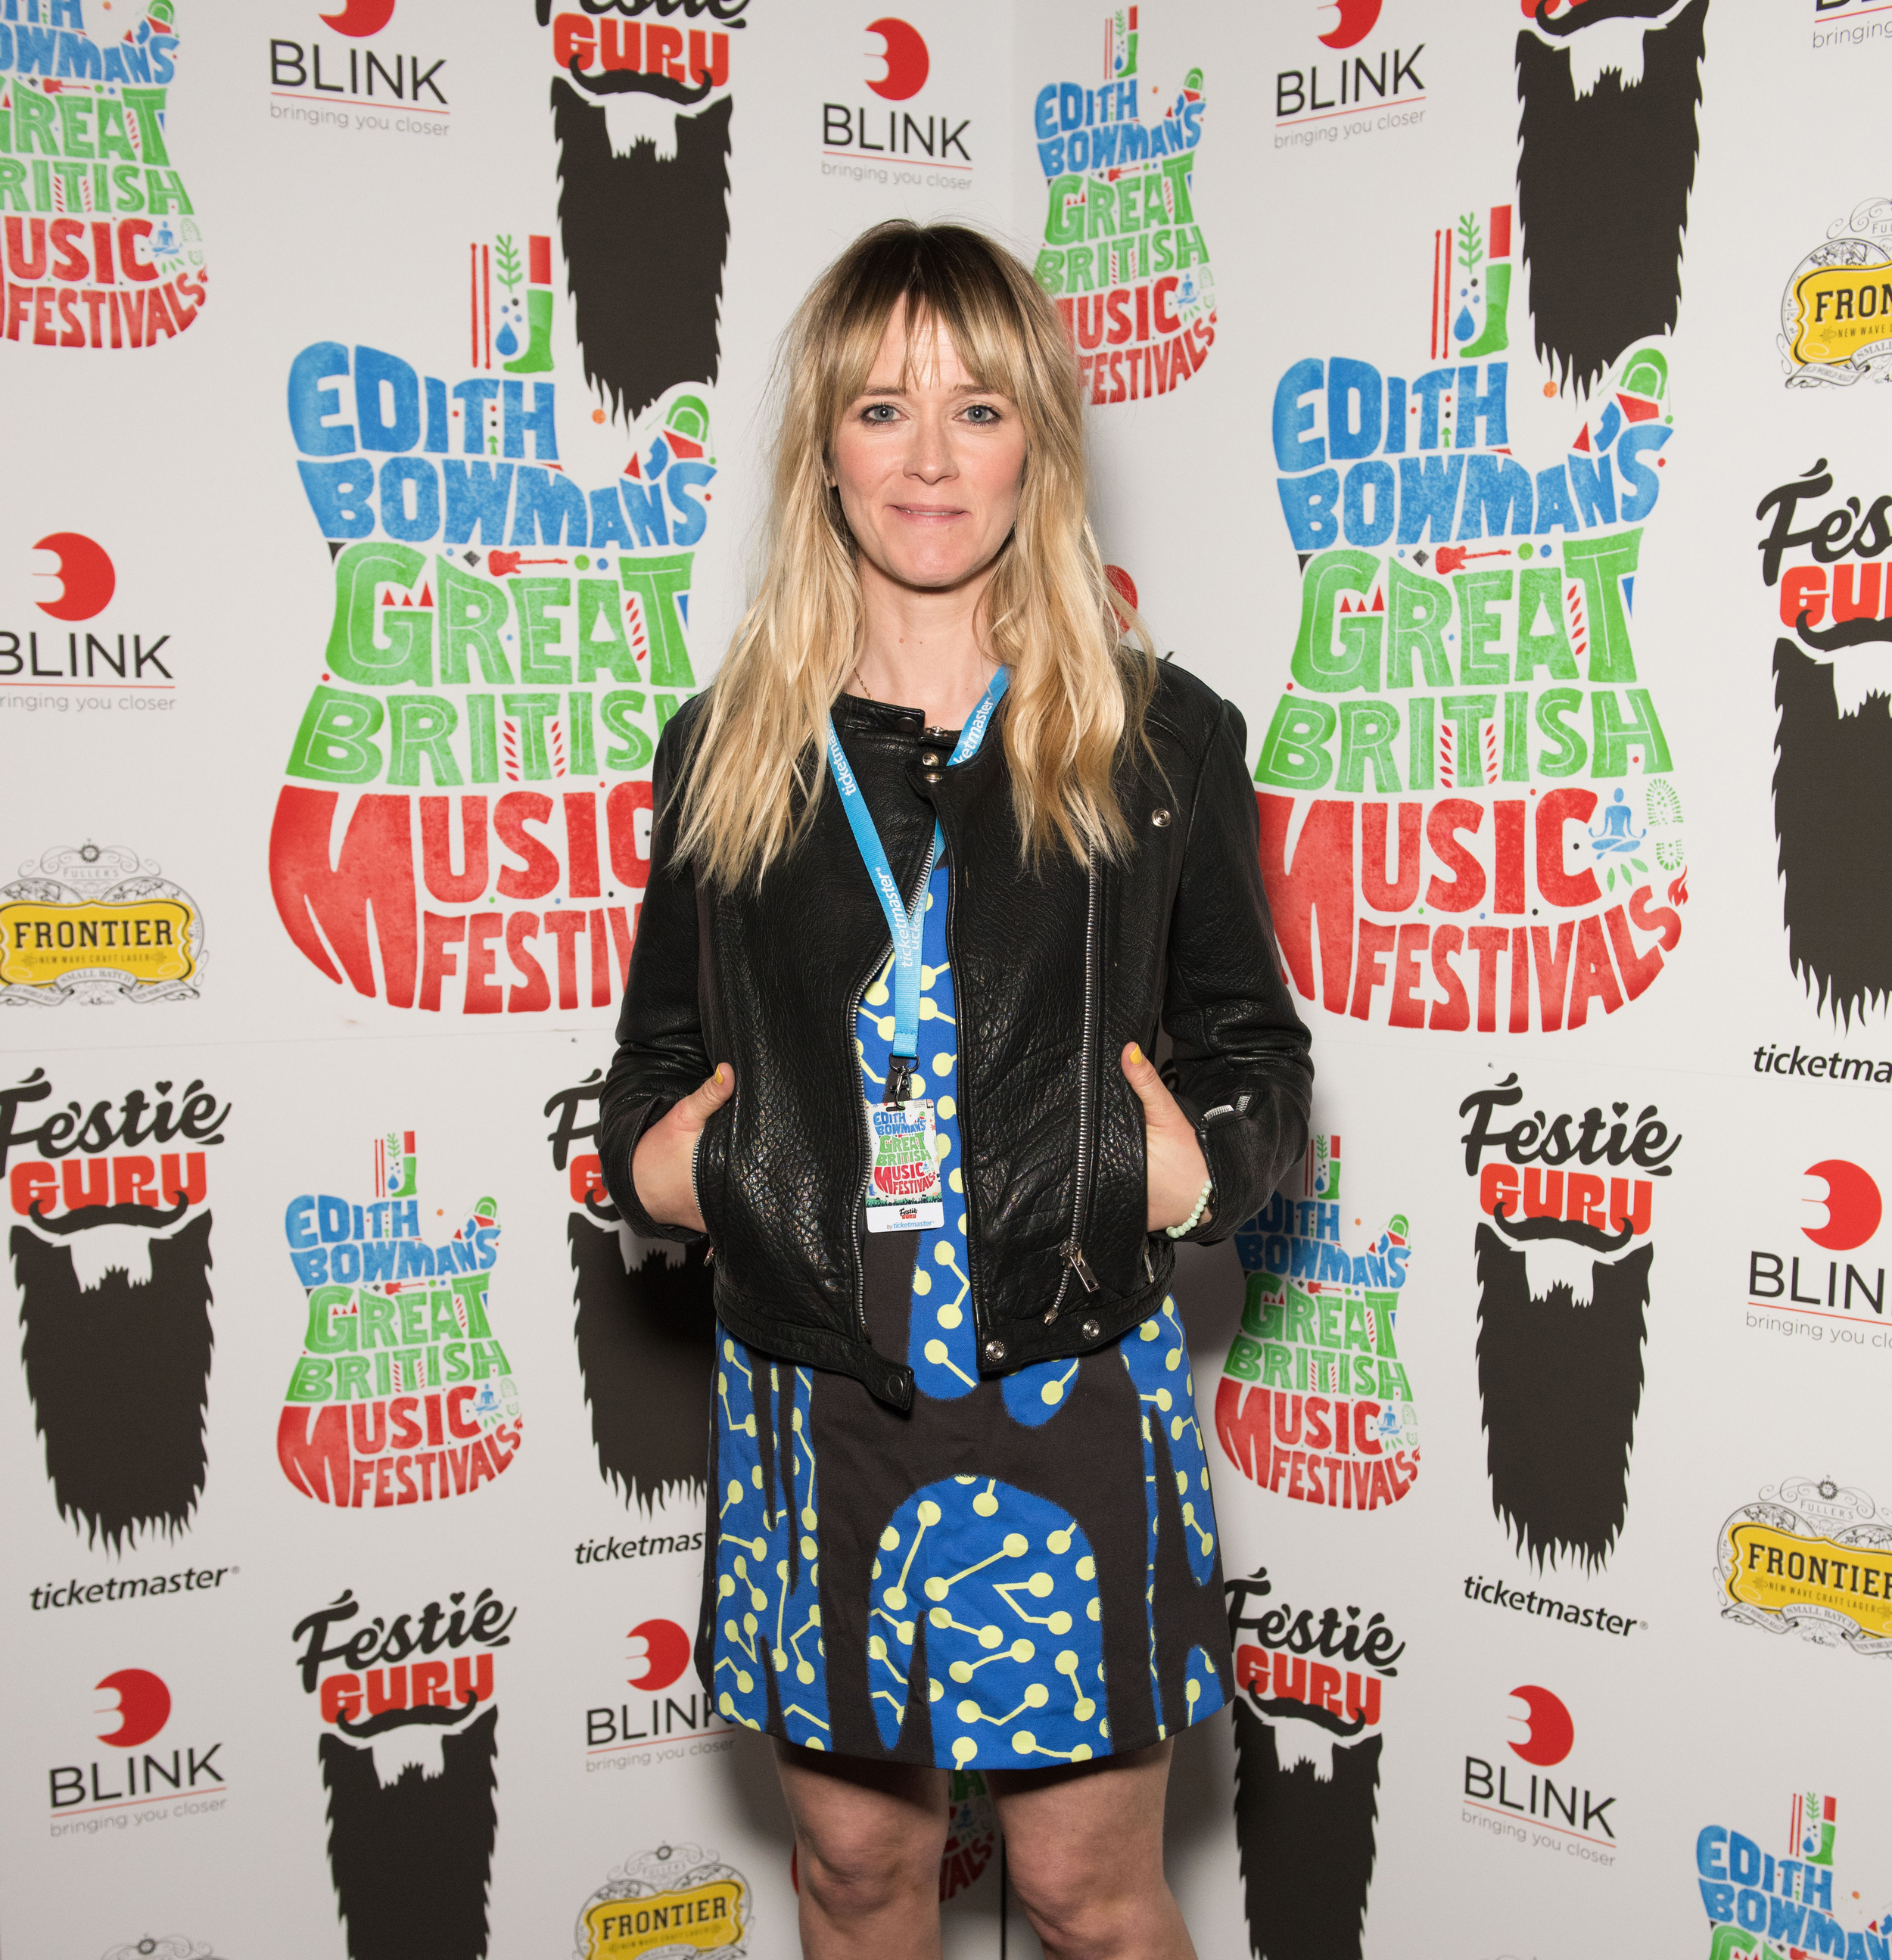 Edith Bowman arrives at the launch